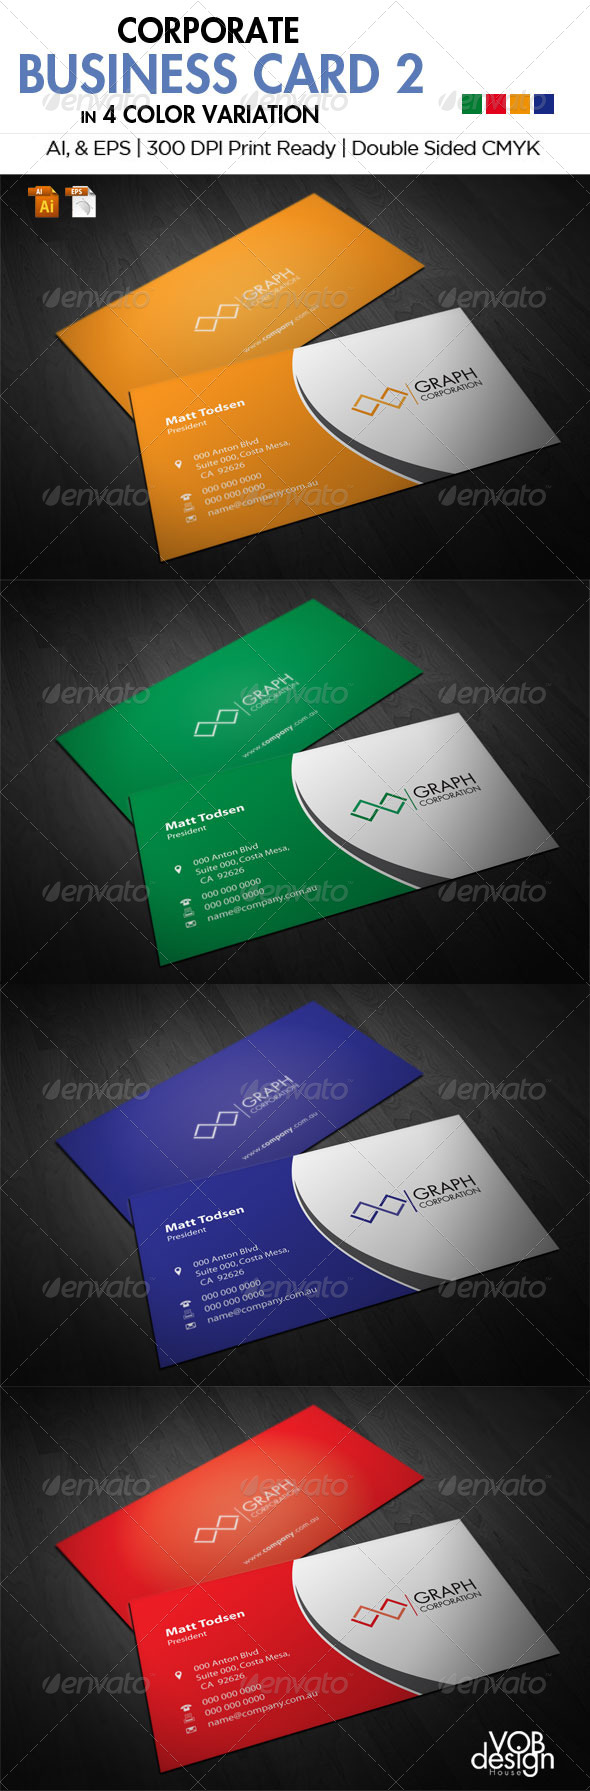 GraphicRiver Corporate Business Card 2 5845569